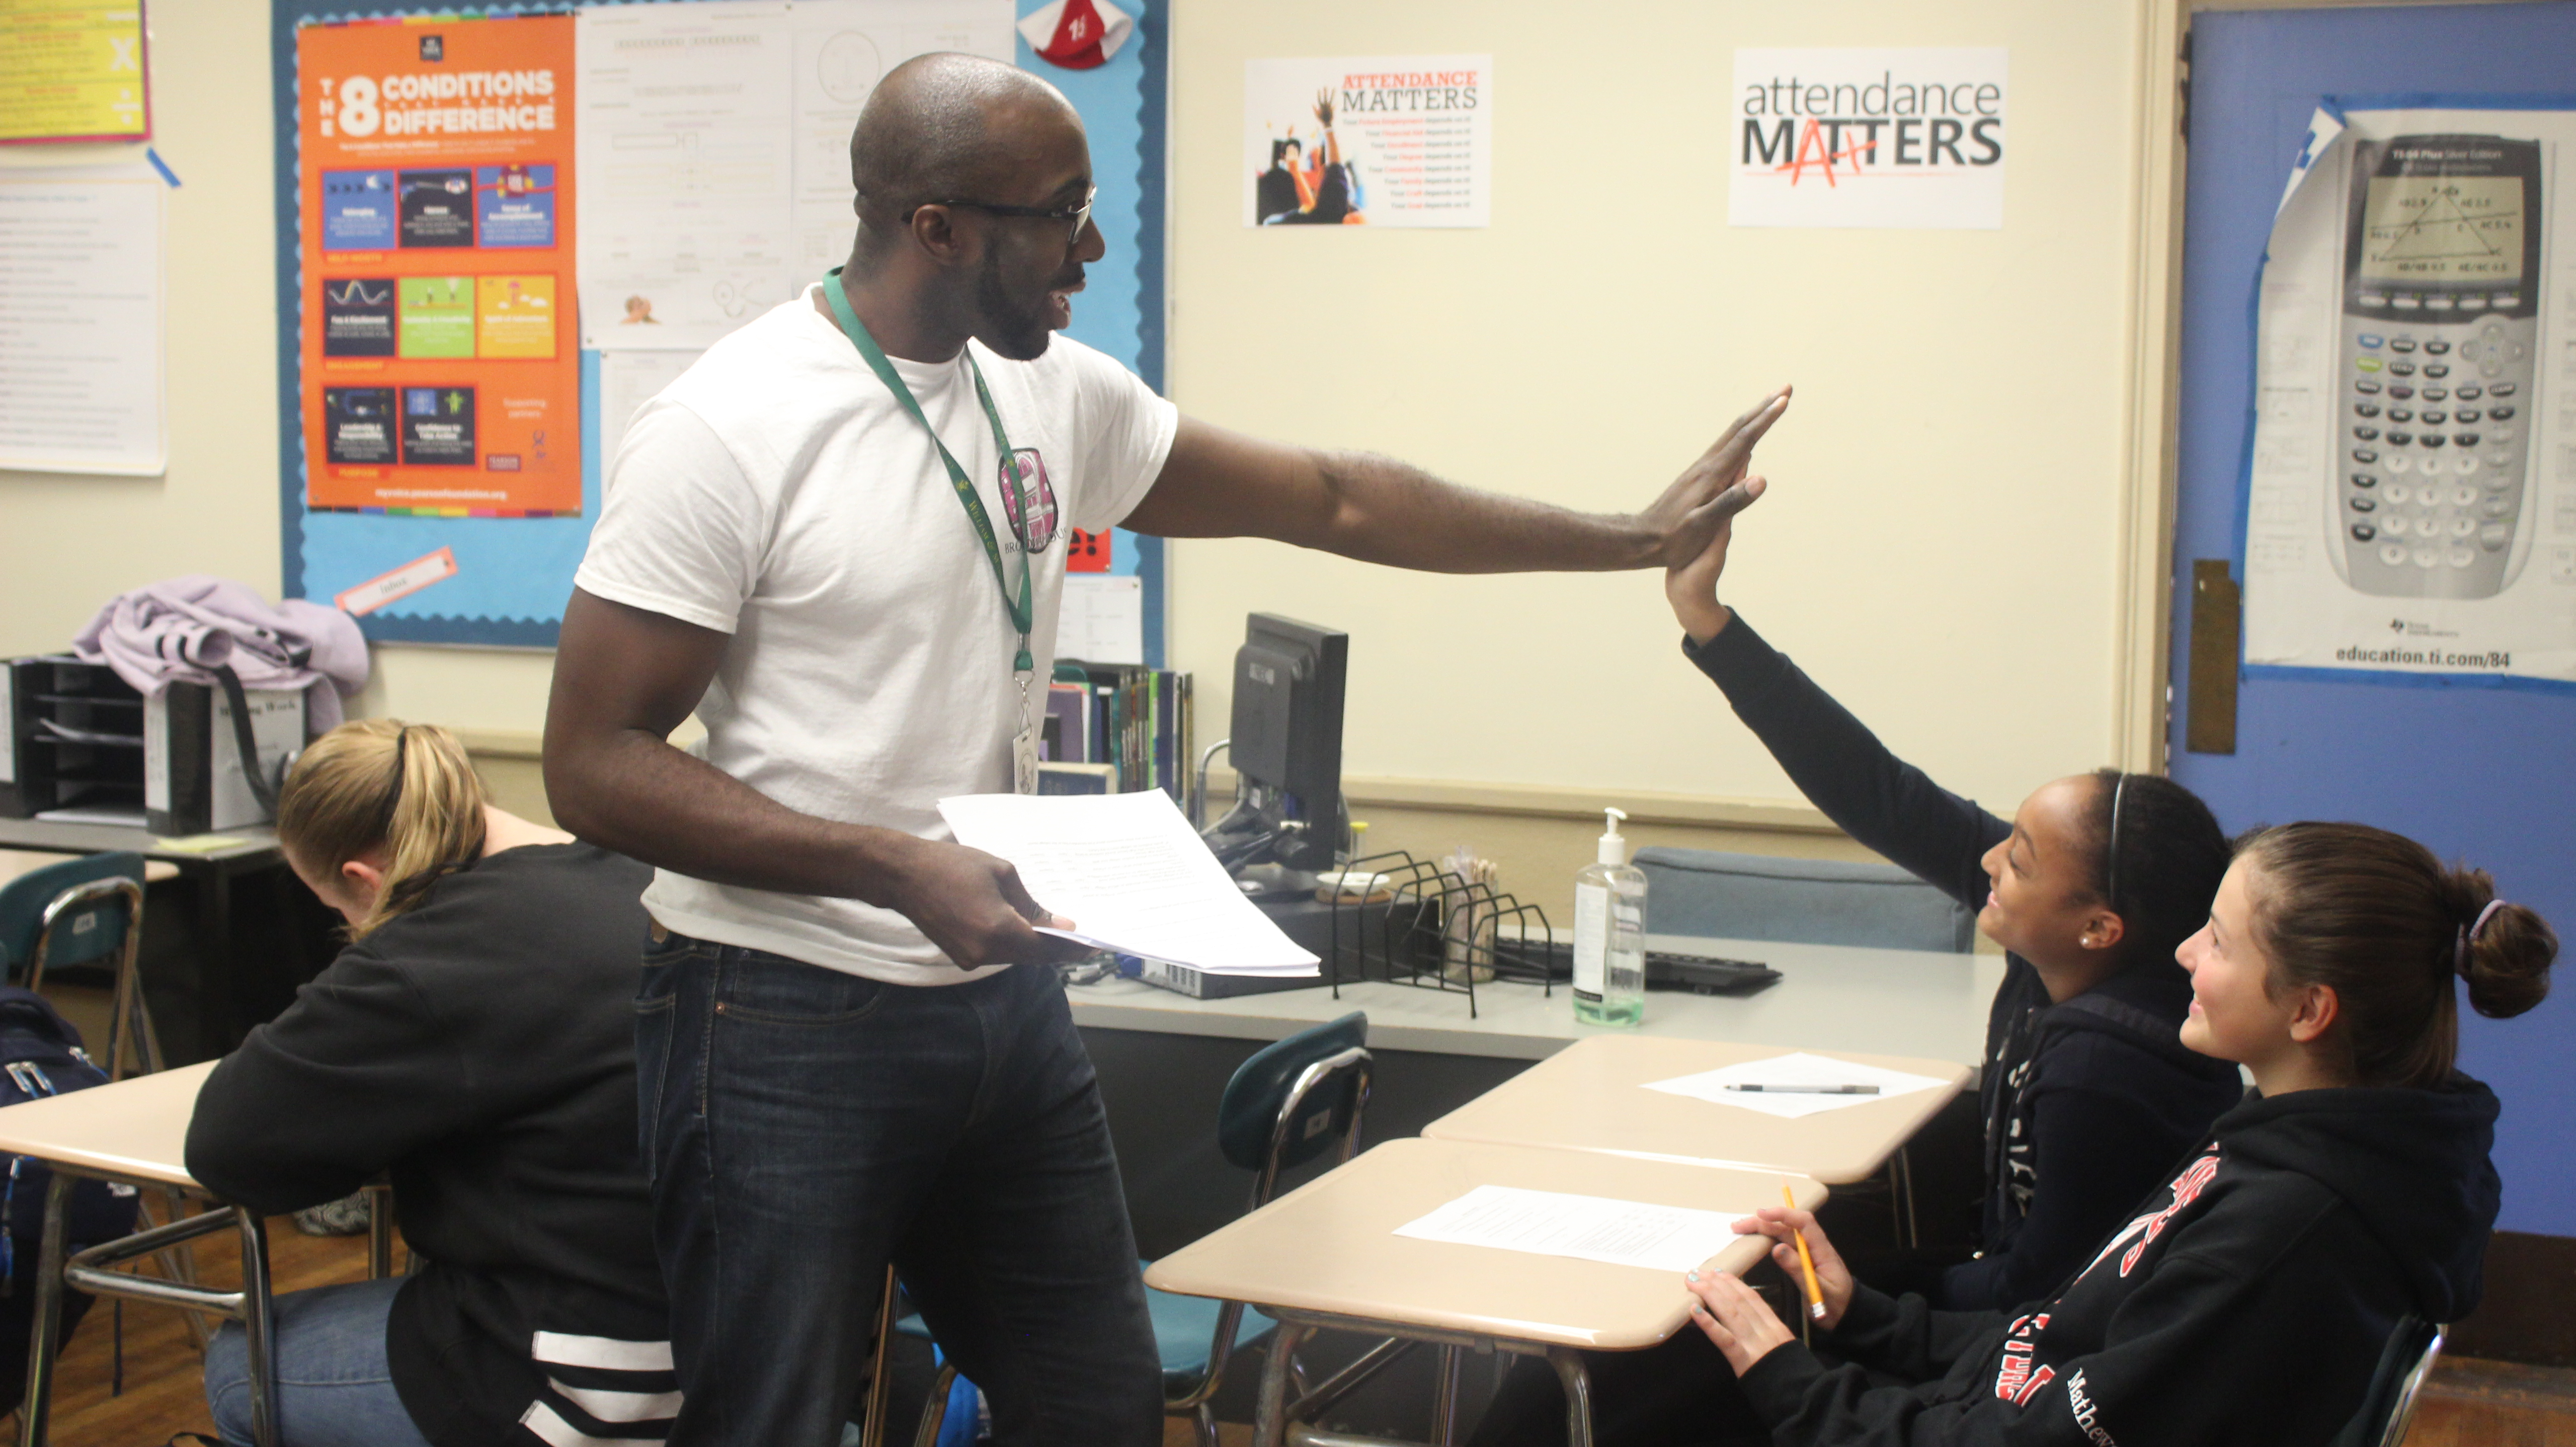 Kevin Dua, 2017 Massachusetts History Teacher of the Year, with his students at Somerville High School